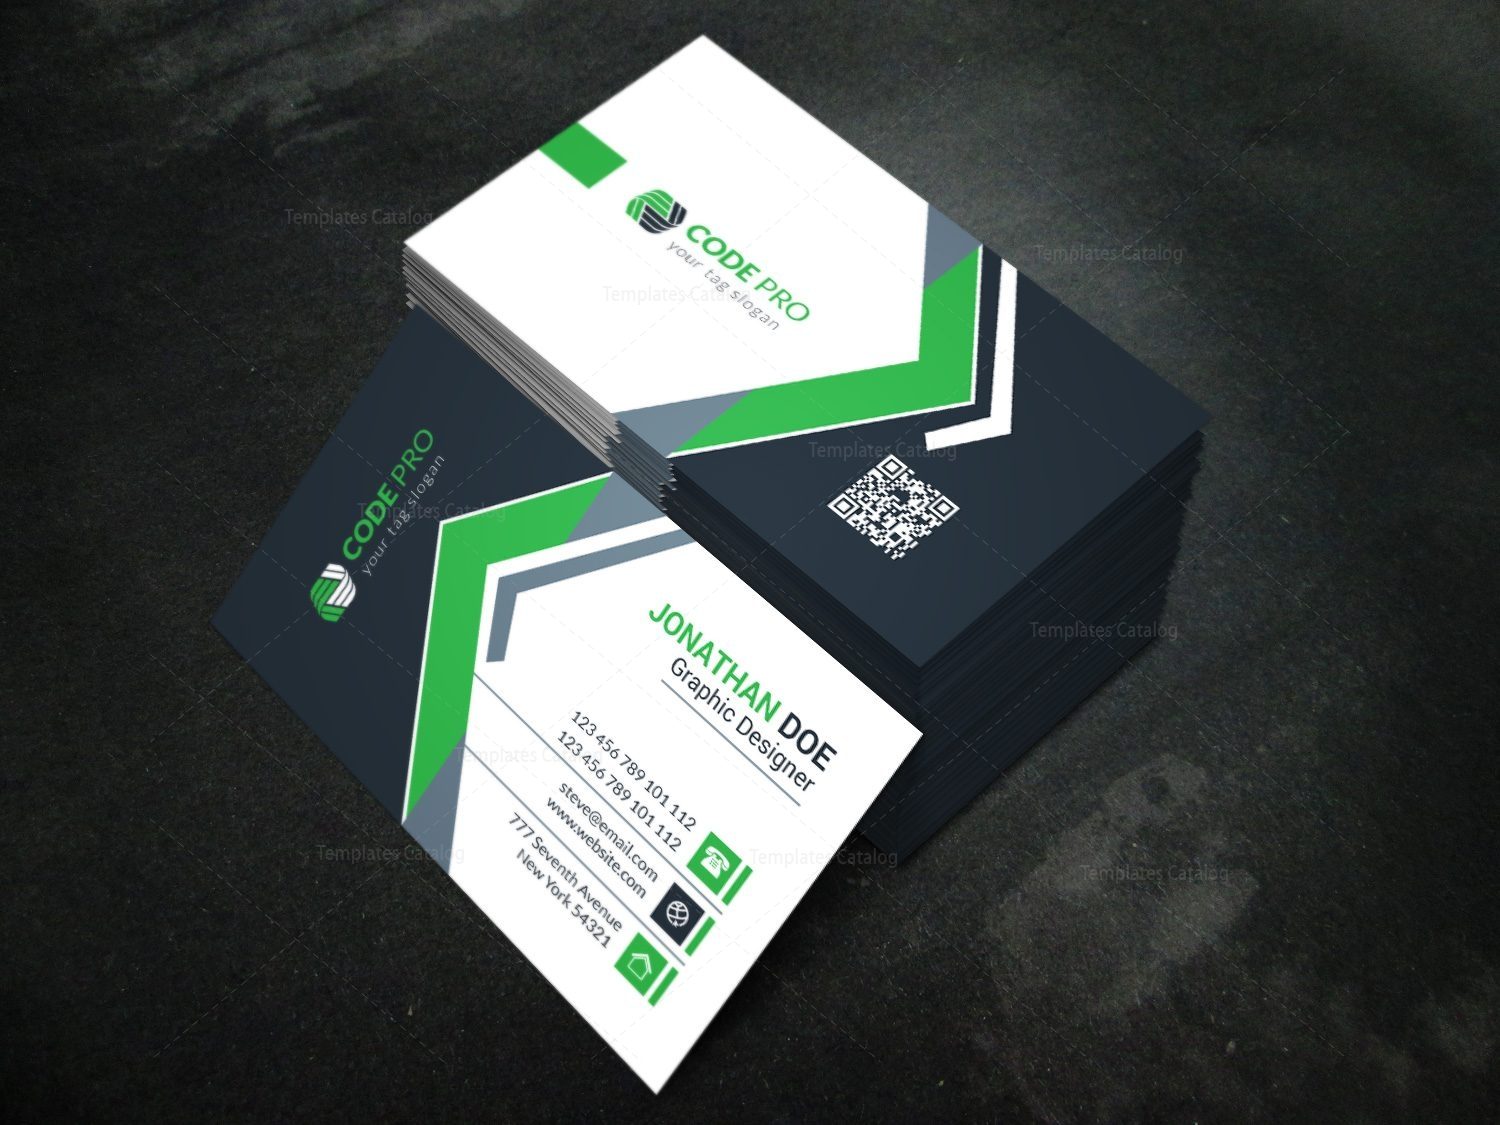 Modern business card design template in eps format 001623 template modern business card design template in eps format 4 fbccfo